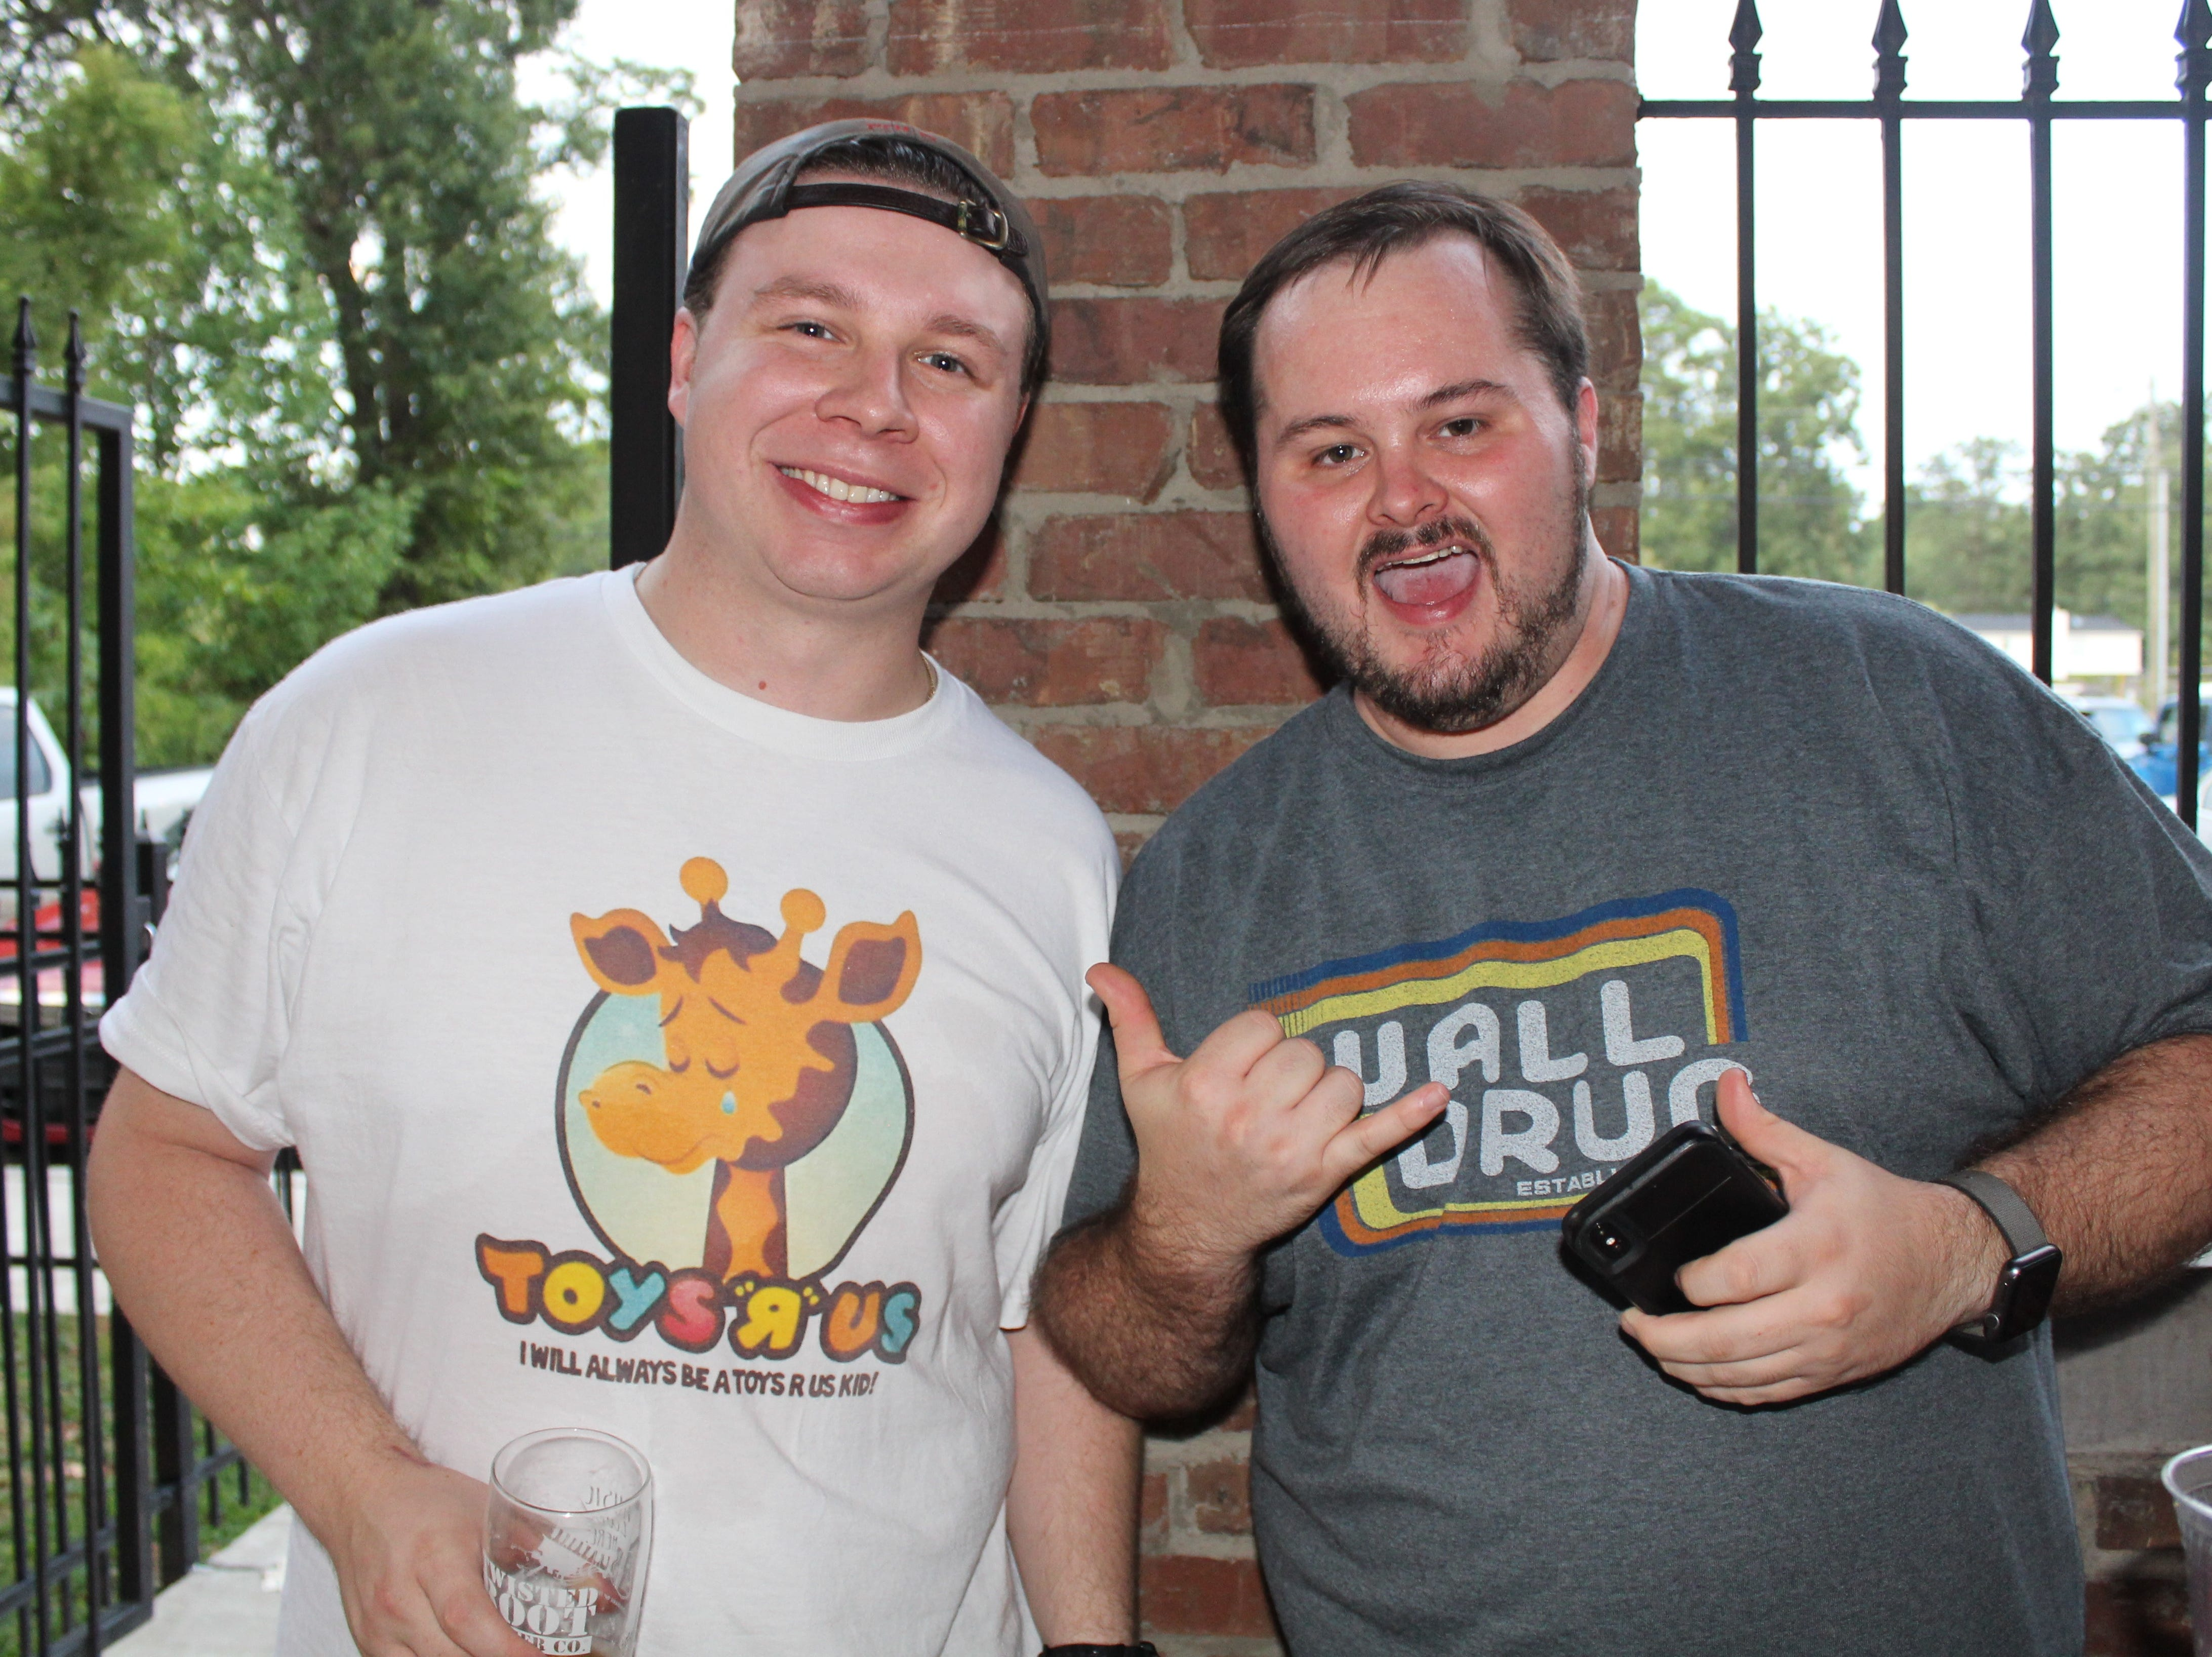 Micheal Brown of Shayliff and Chris Lyon of Prize Fest at the Louisiana Music Prize Top 5 Announcement Party.